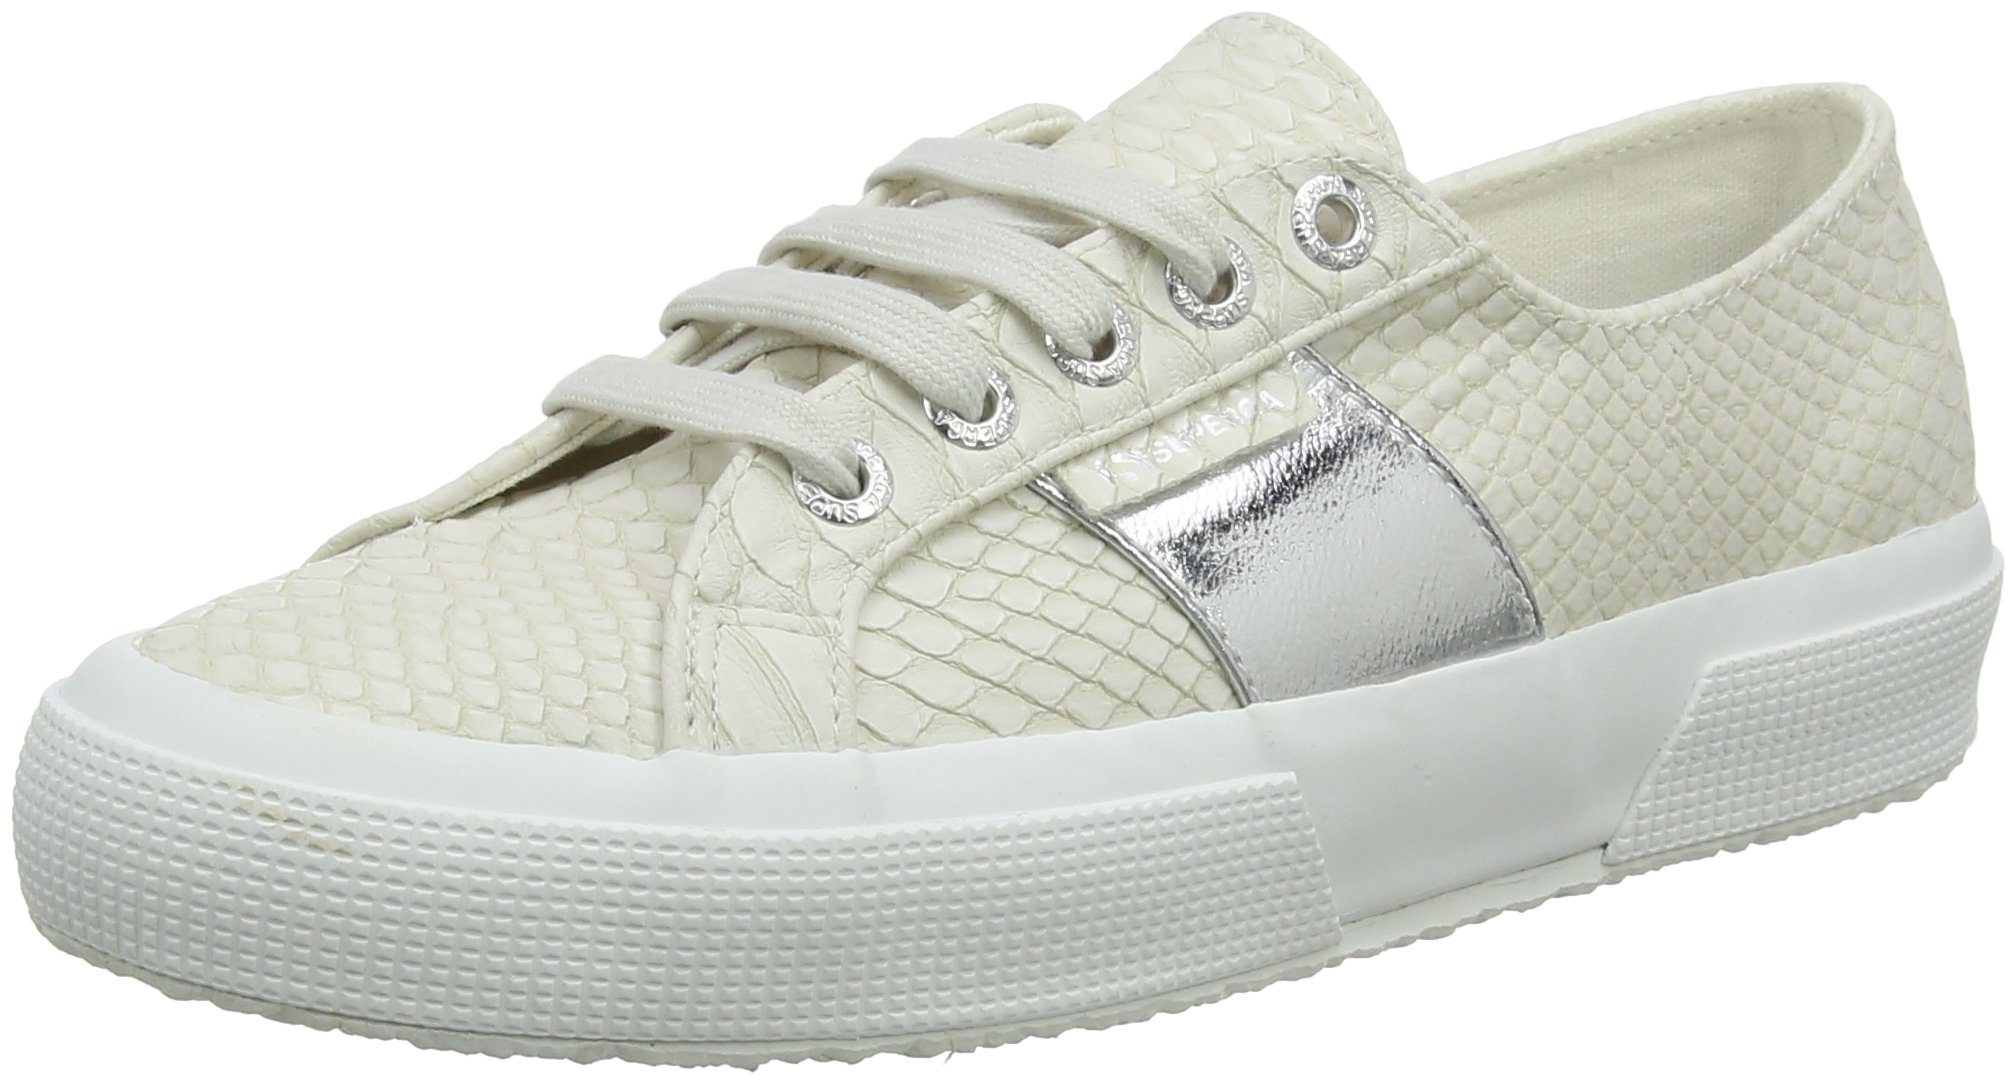 Superga Women's 2750 Pusnakew Trainers